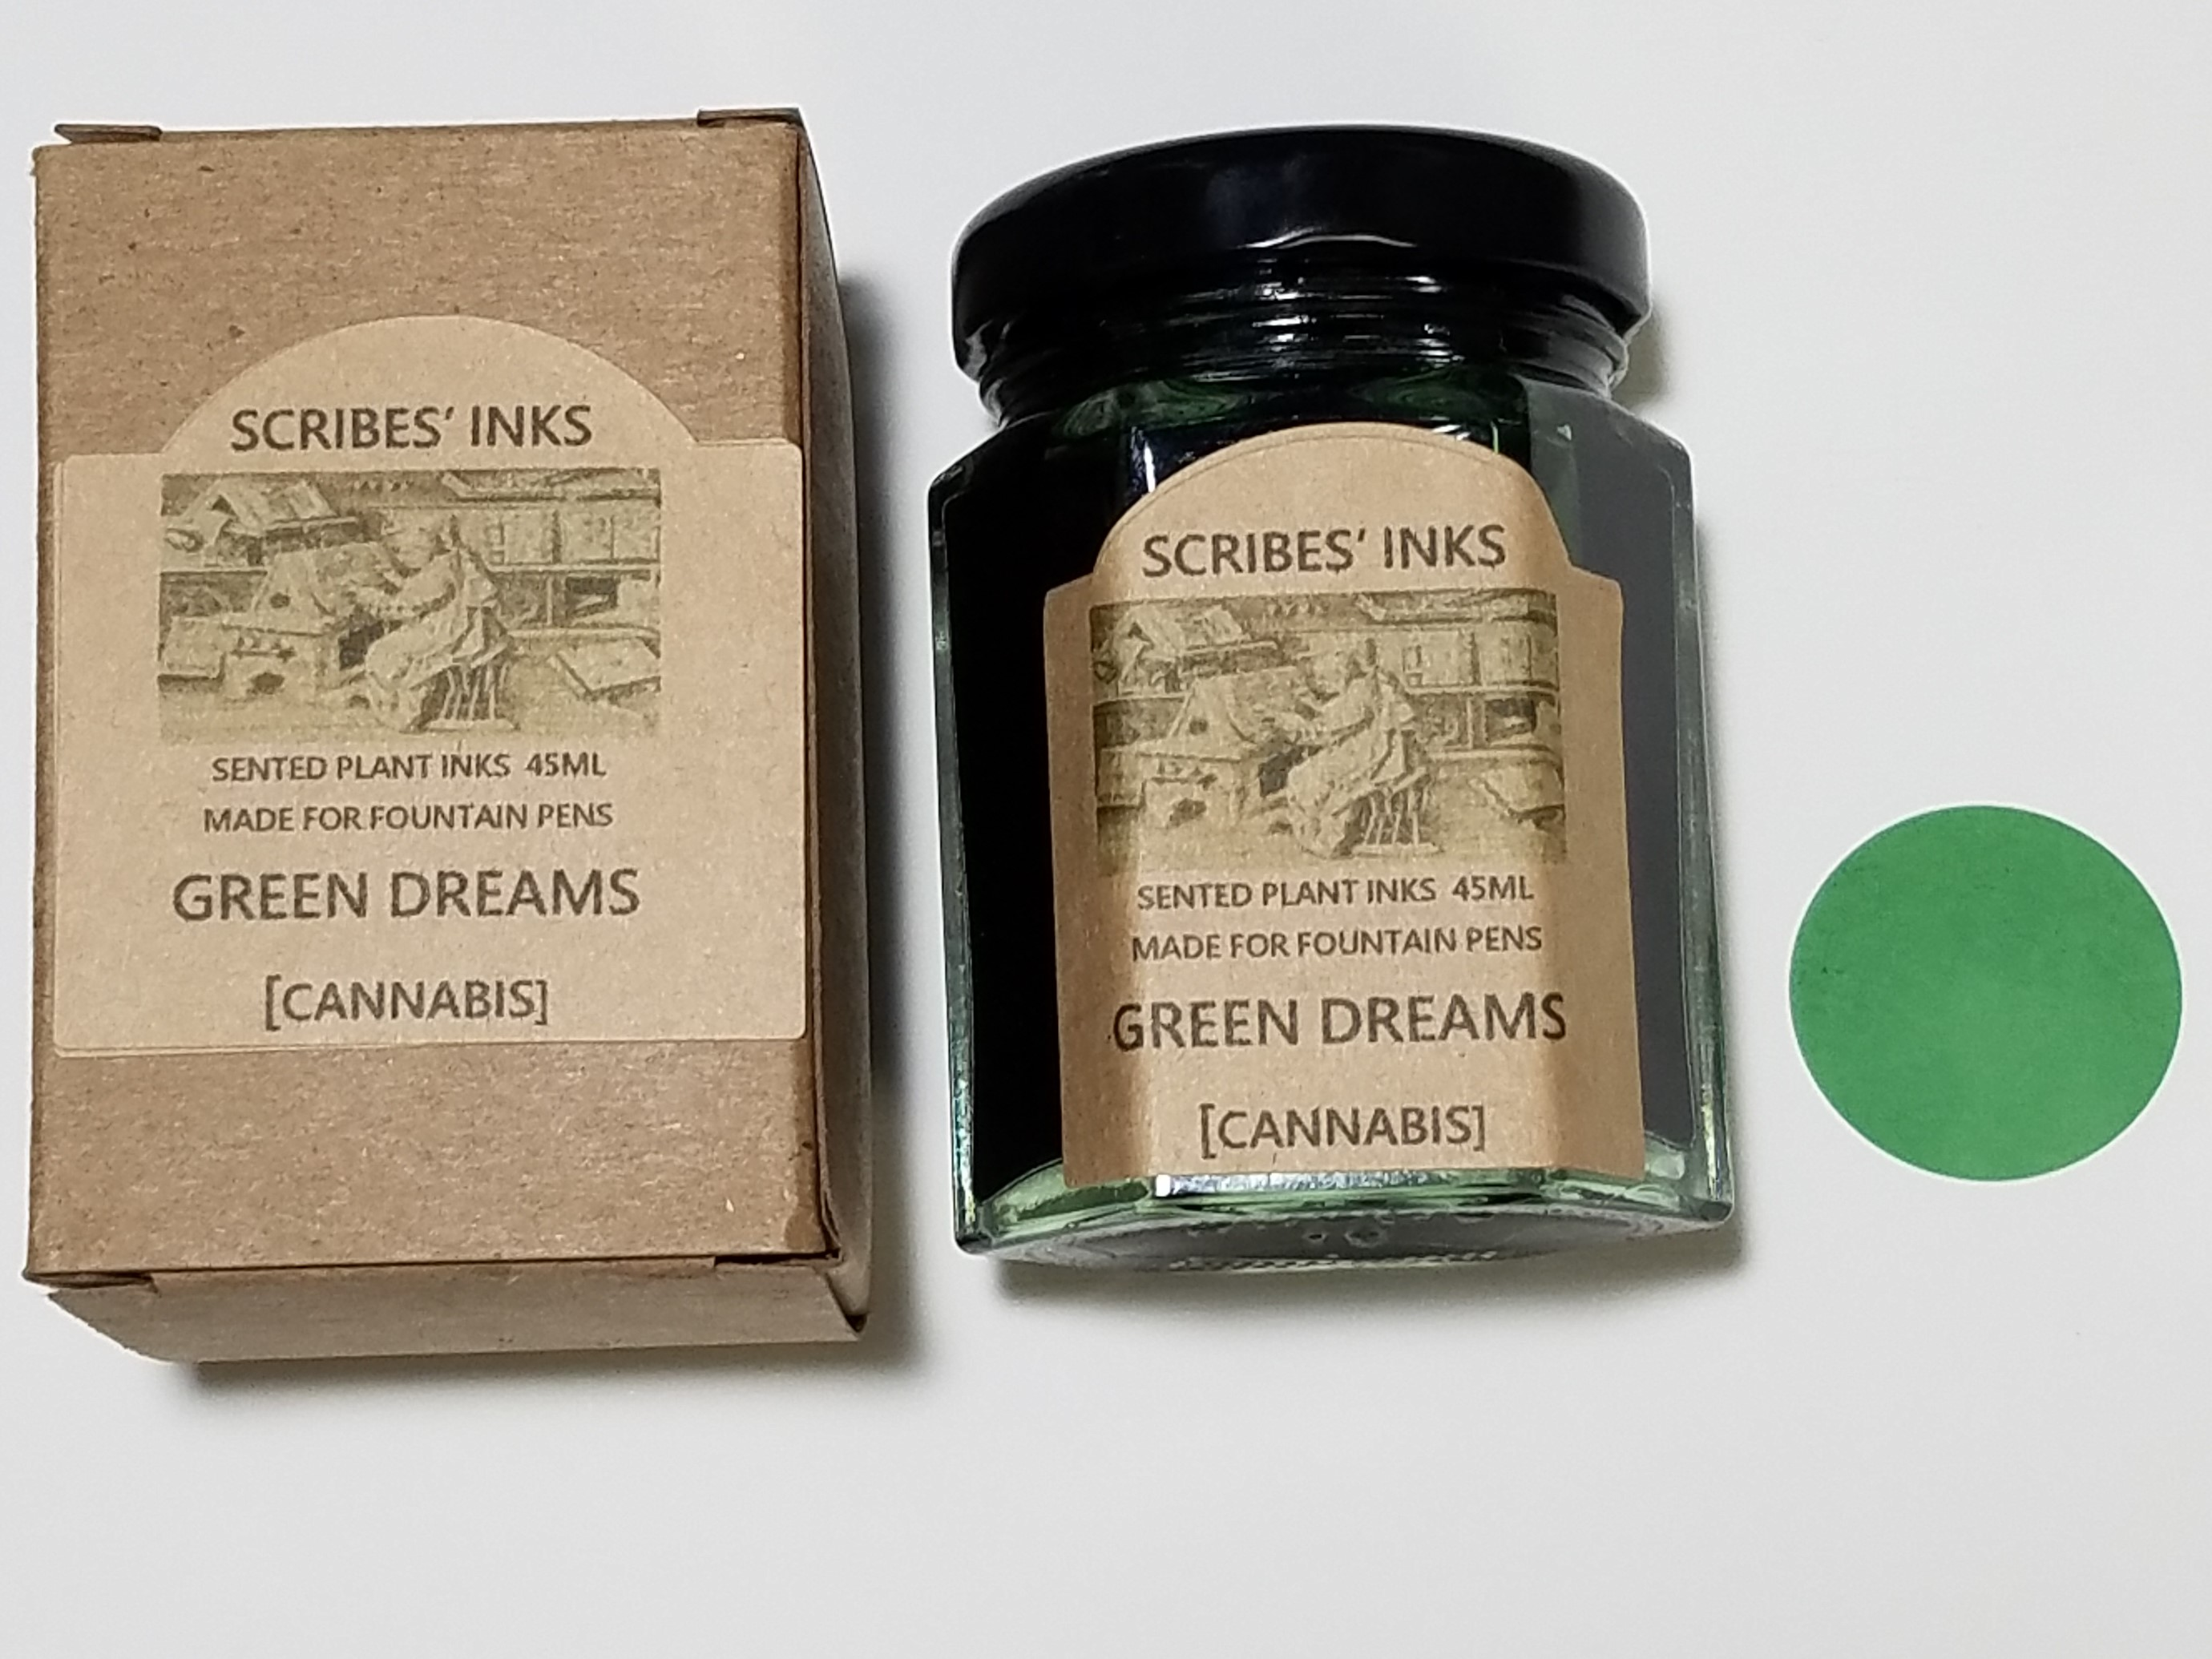 GREEN DREAMS [CANNABIS]